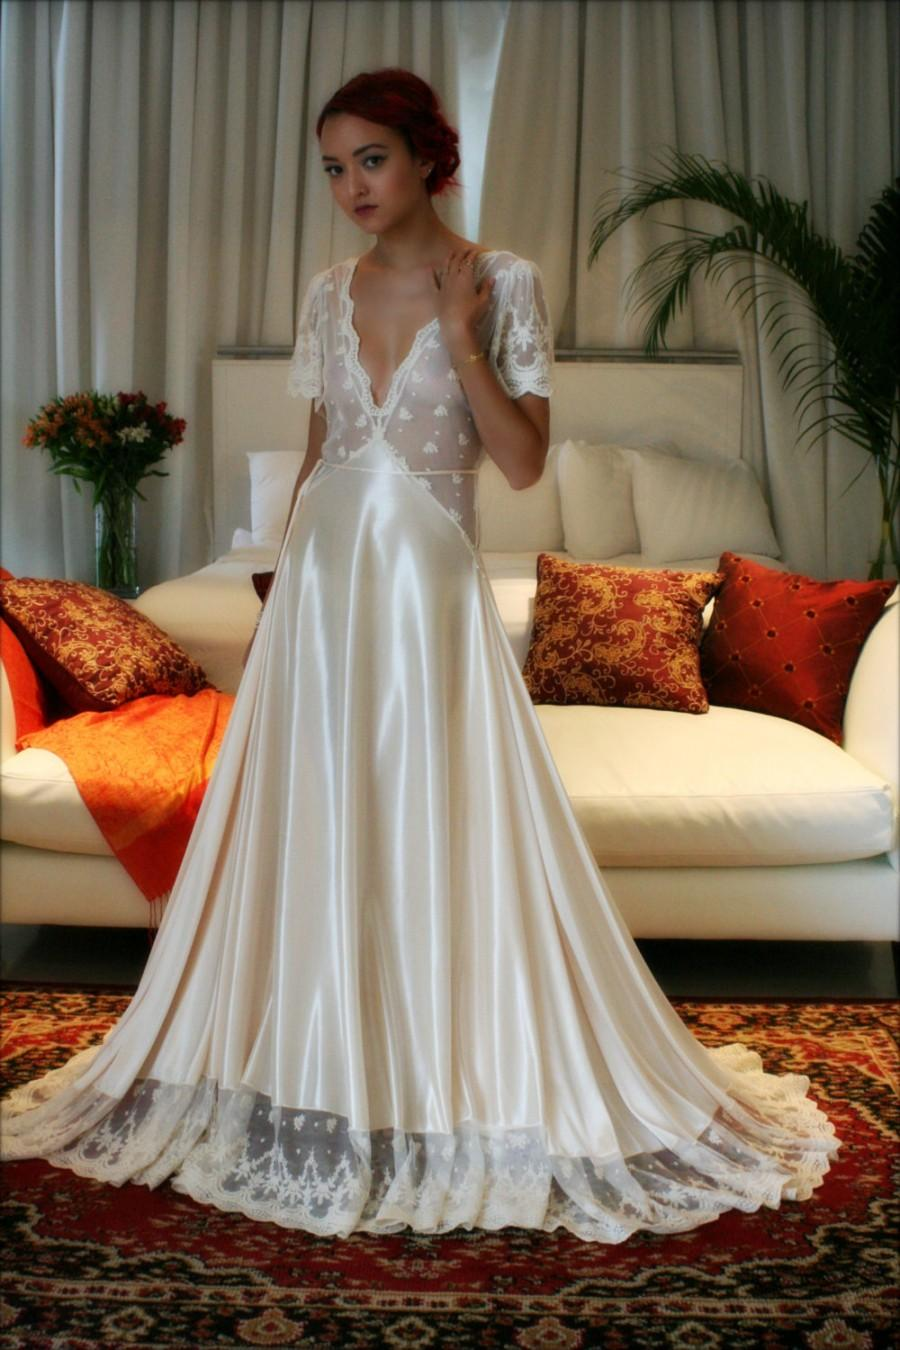 Amazing Satin Night Gowns Adornment Wedding And Flowers Ispiration